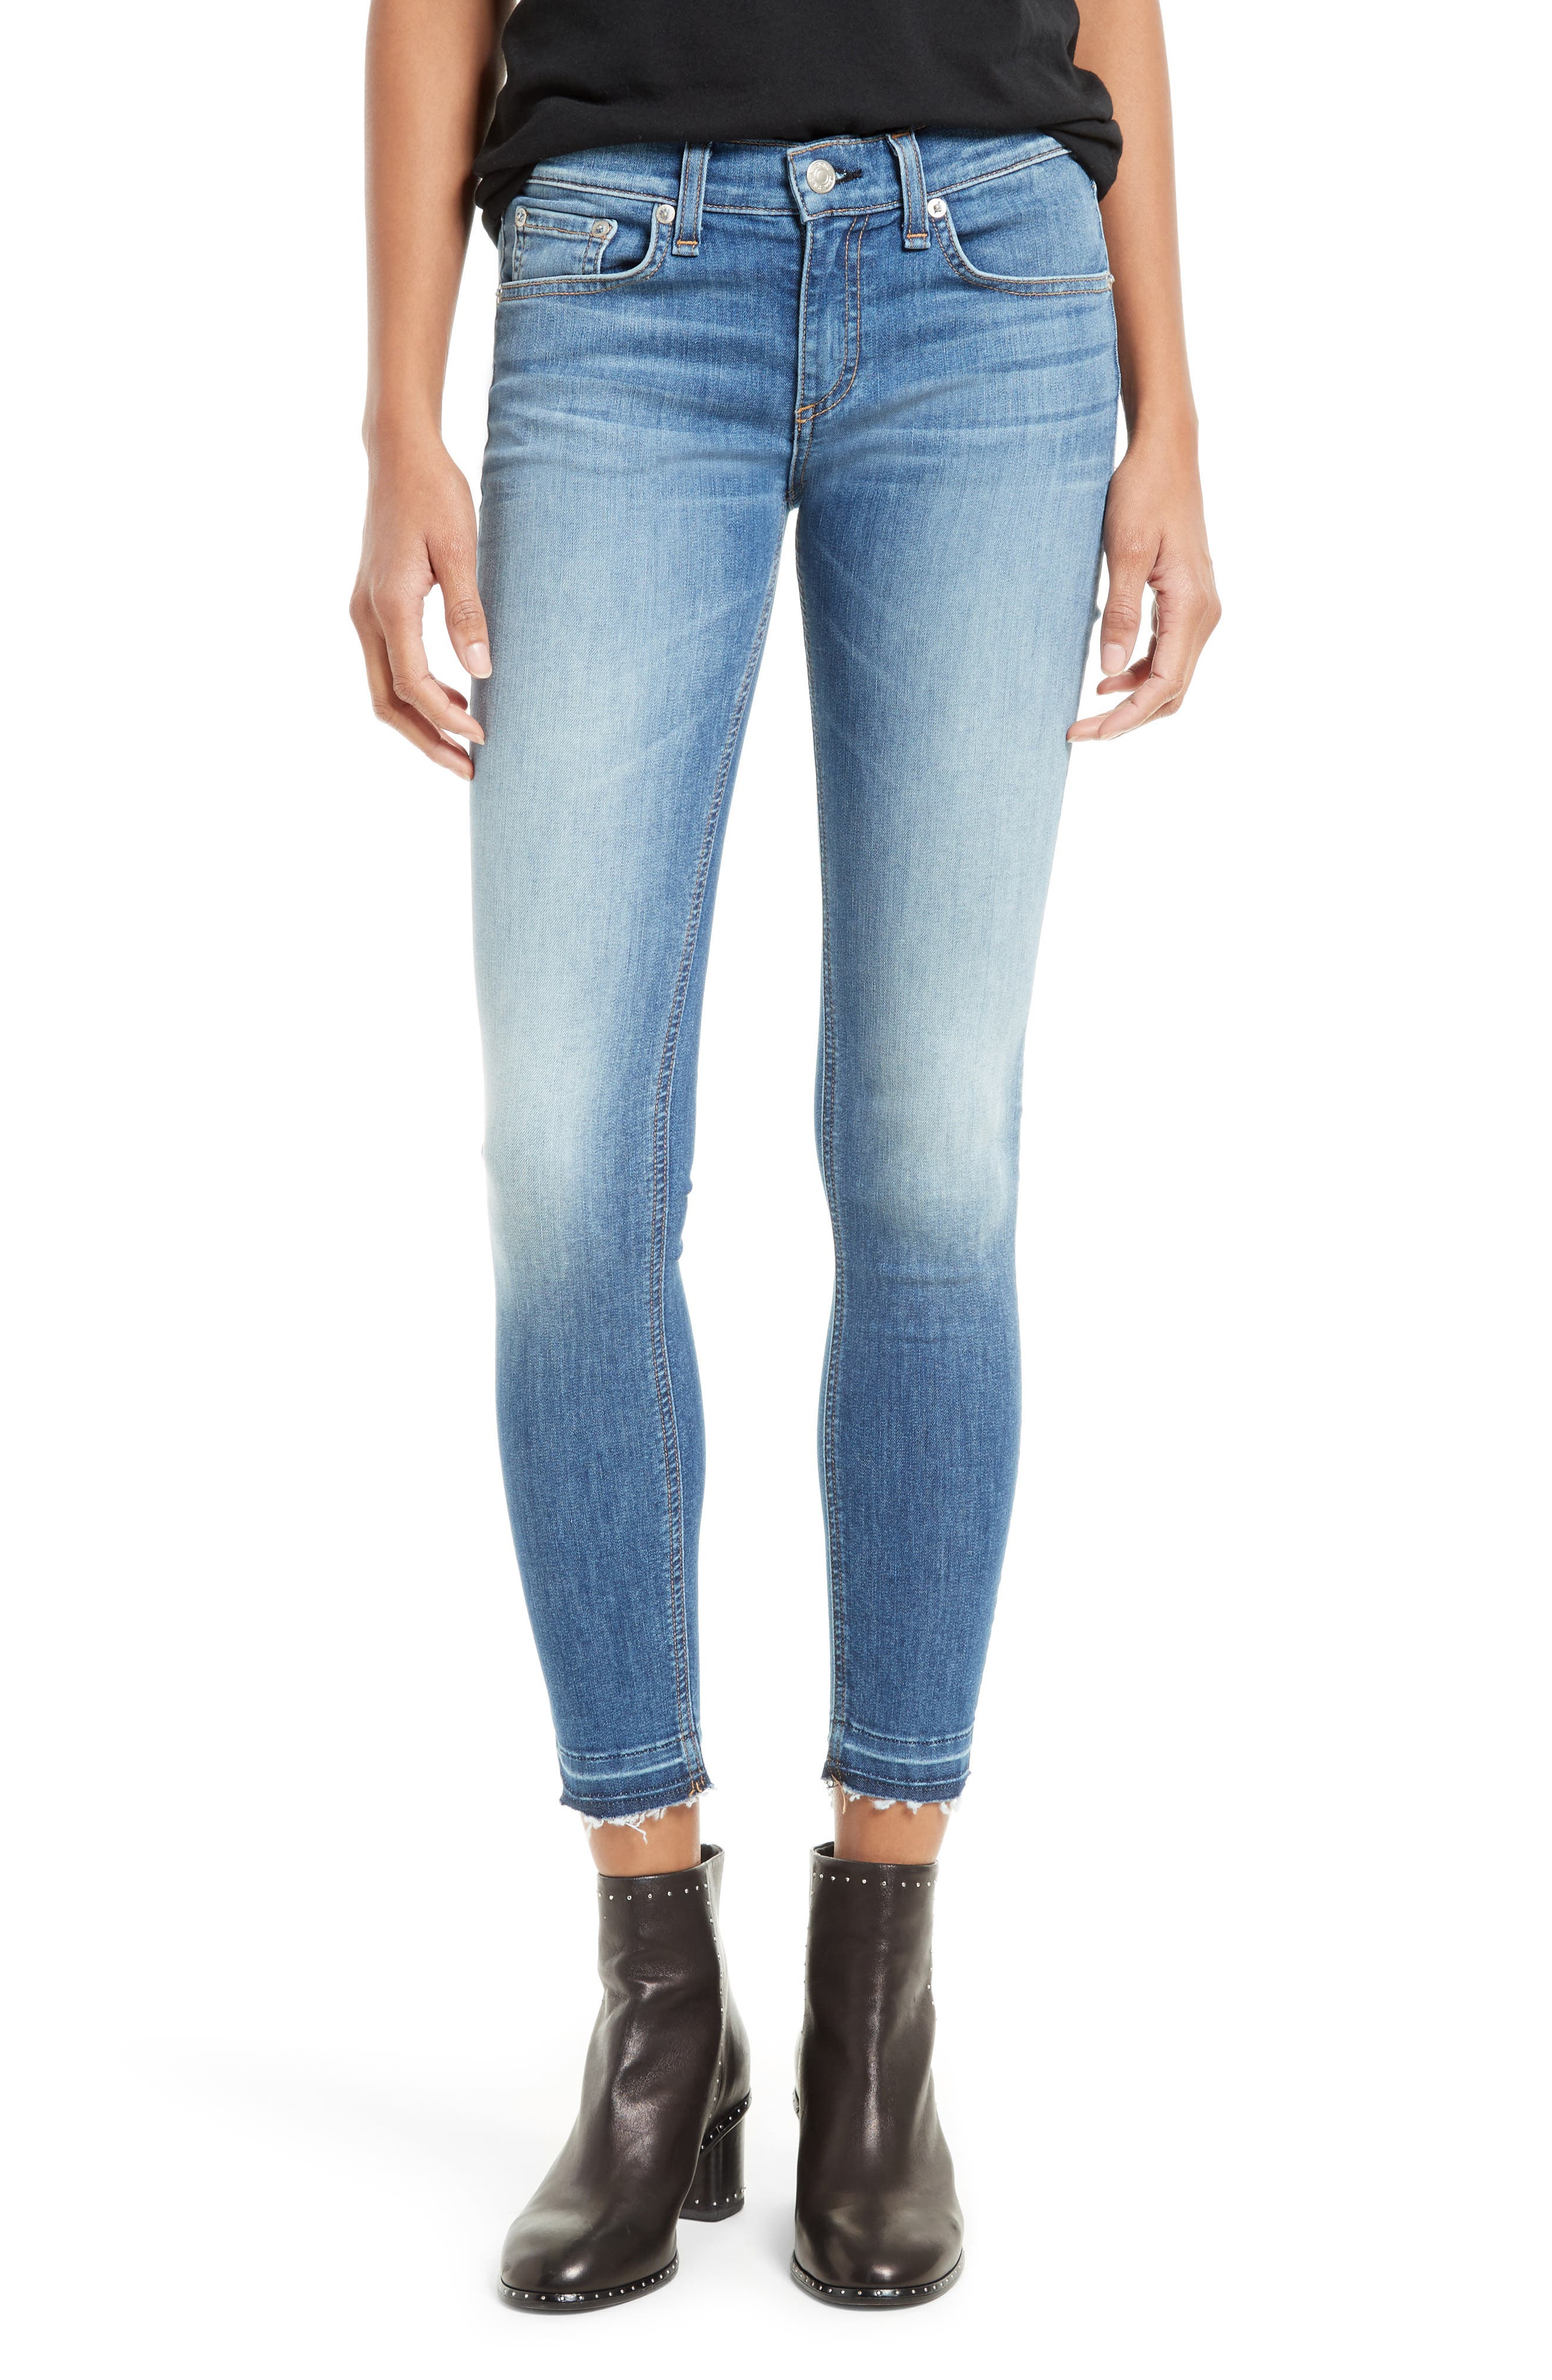 Capri Skinny Jeans,                             Main thumbnail 1, color,                             CLEAN LILLY DALE